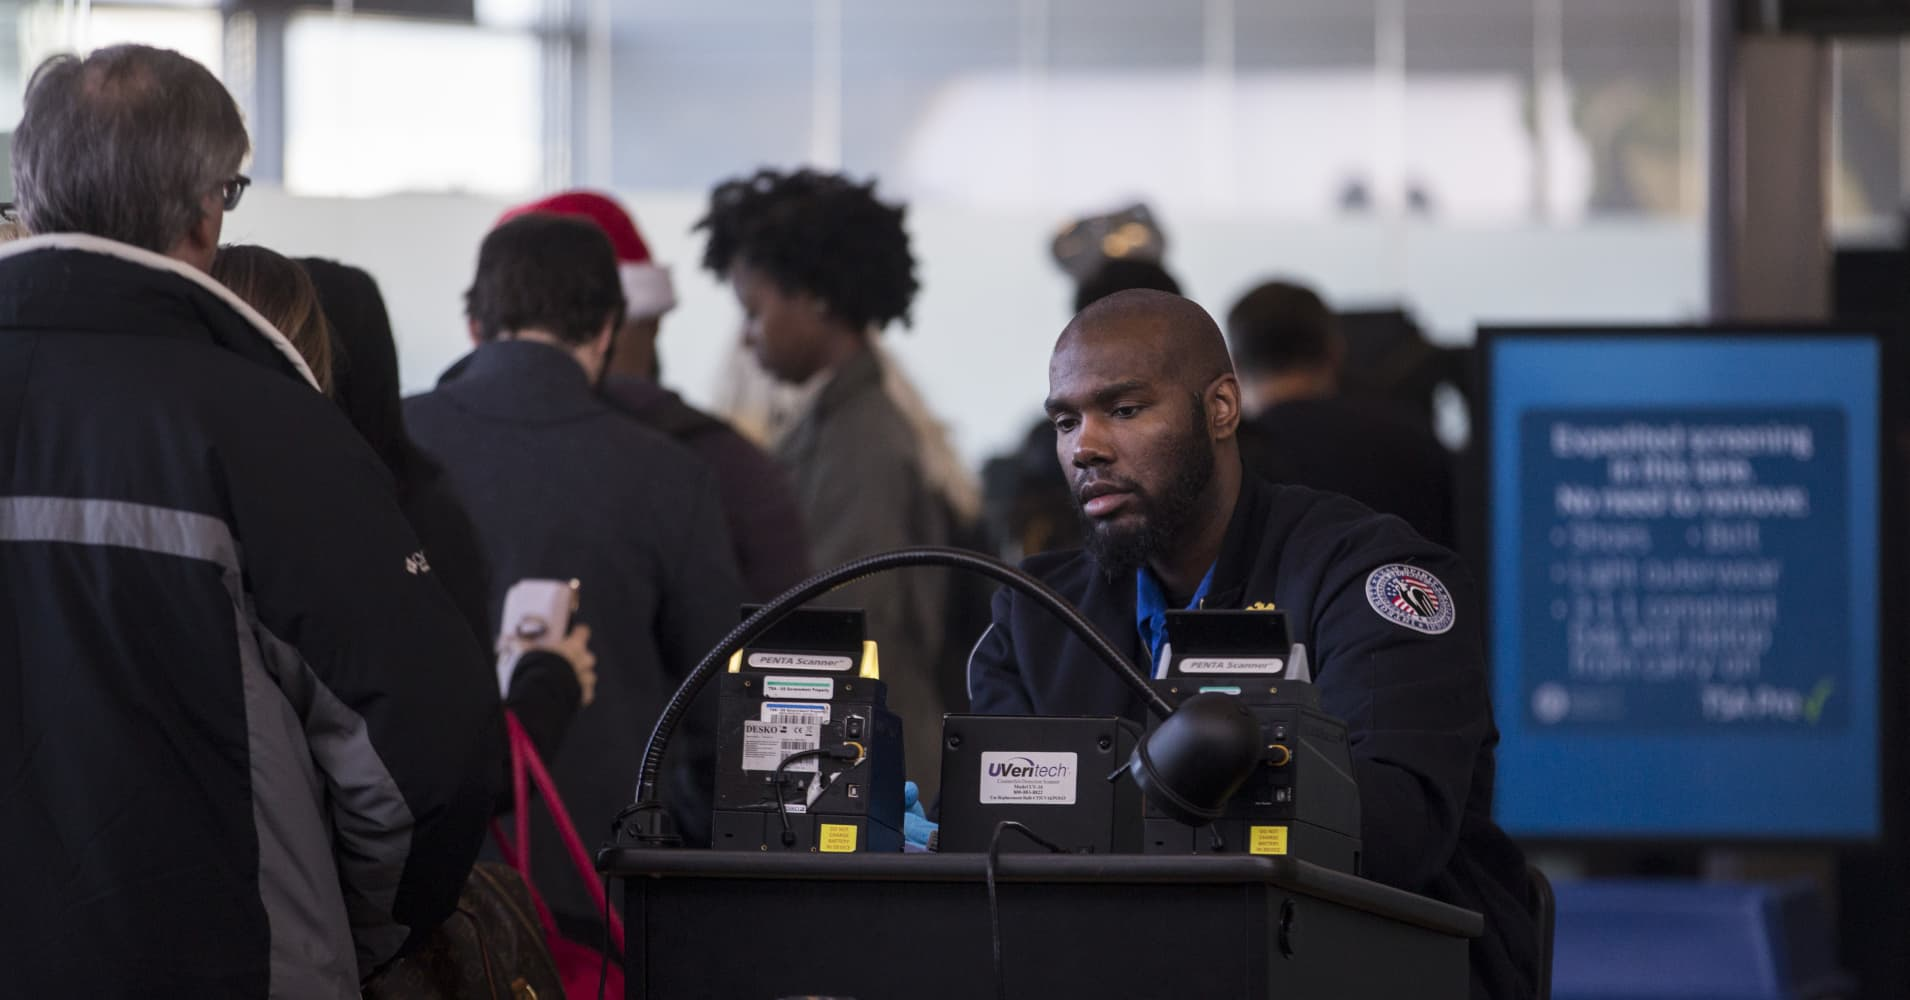 Amid shutdown, more TSA agents are calling in sick. Here's what you need to know